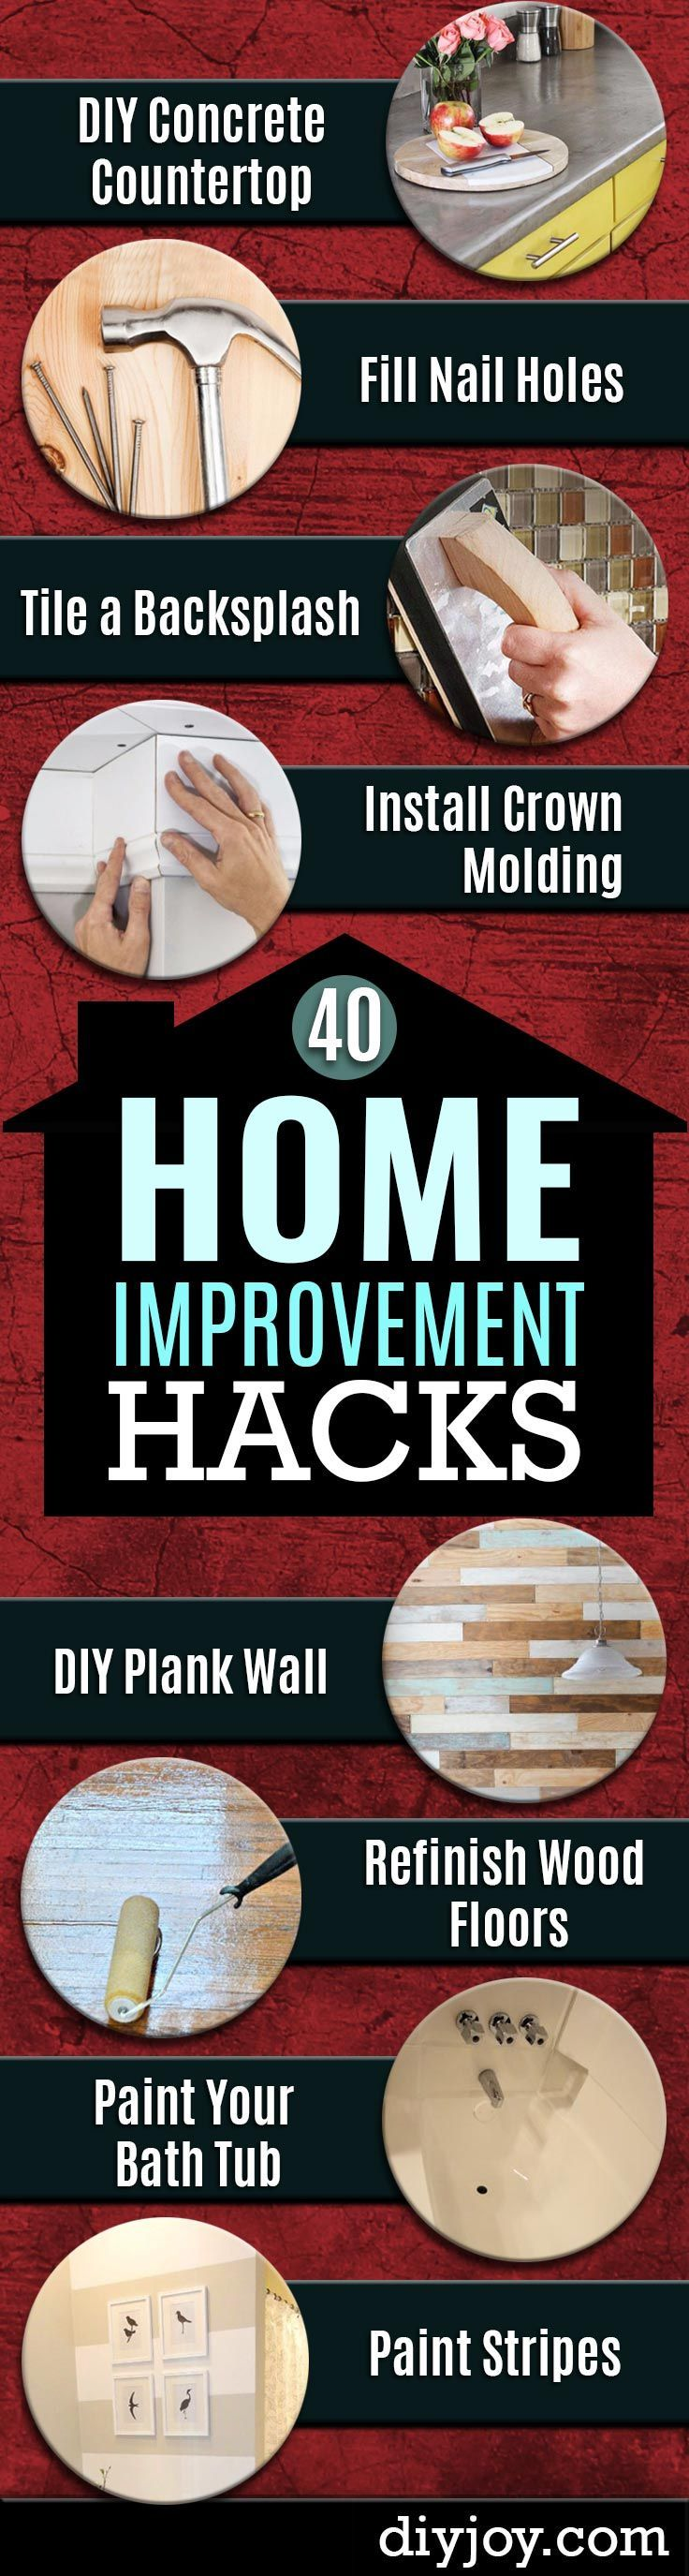 180 Best Diy Ideas Images On Pinterest Presents Tutorials And At Home Spa